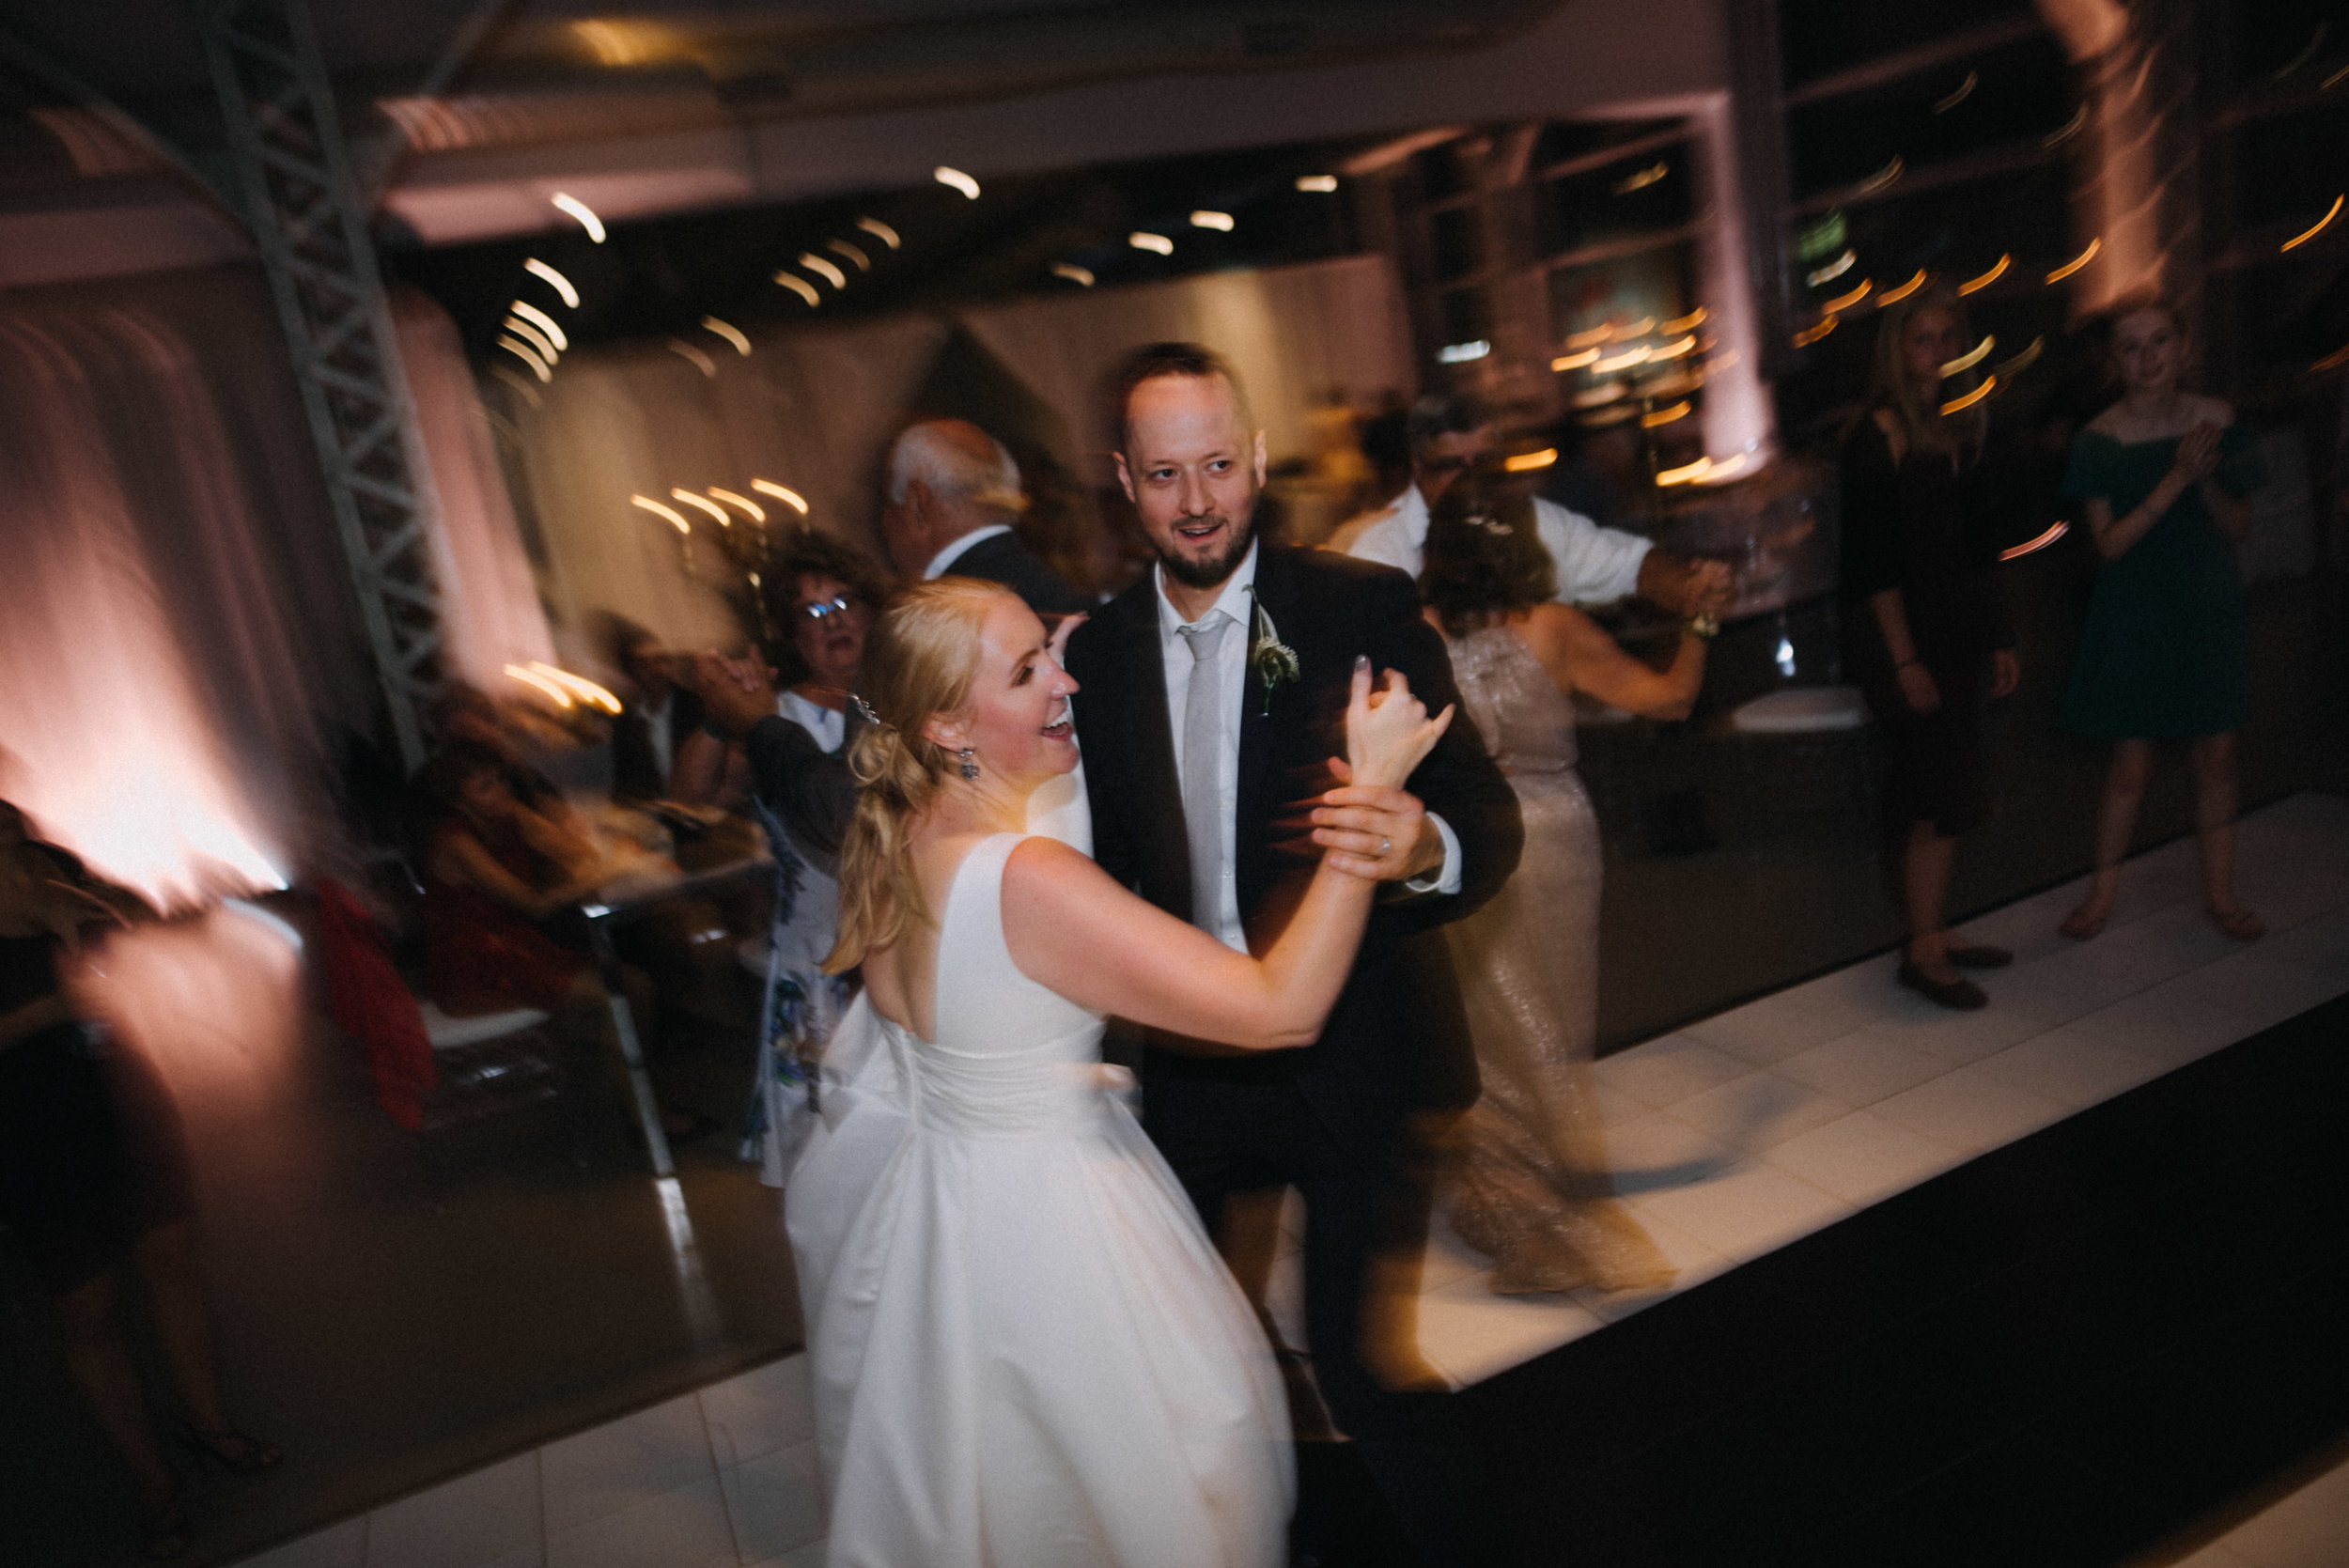 photographe_gatineau_mariage_ottawa_photographer_wedding_natasha_liard_photo_documentary_candid_lifestyle  (11).jpg